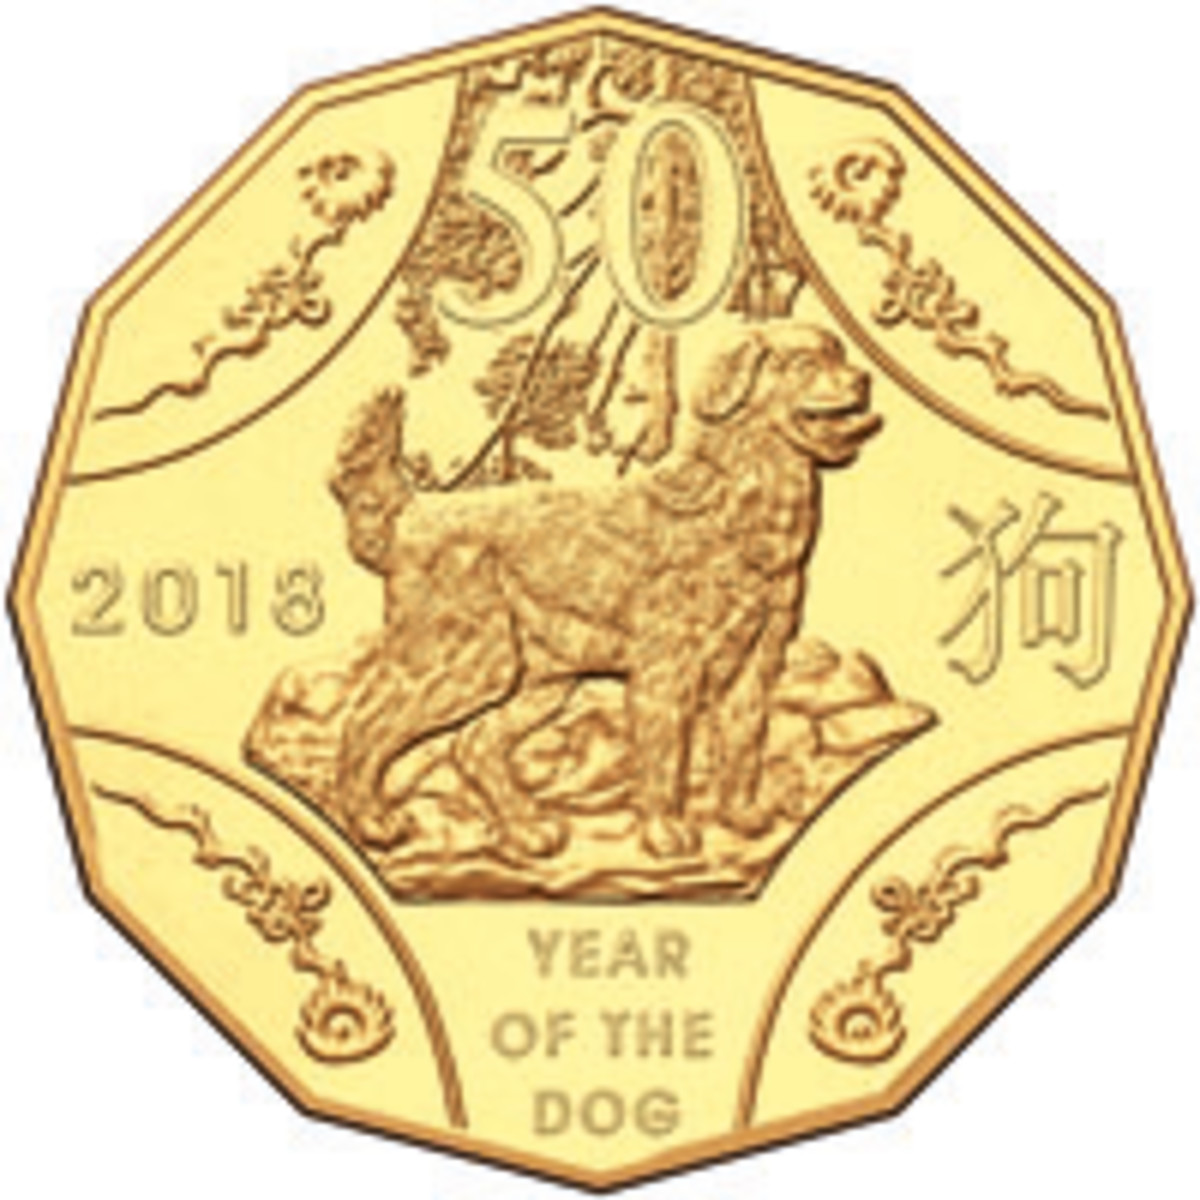 Reverse of Australia's Year of the Dog tetradecagonal 50 cents made available at Berlin plated with 24 karat gold. (Image courtesy Downies)